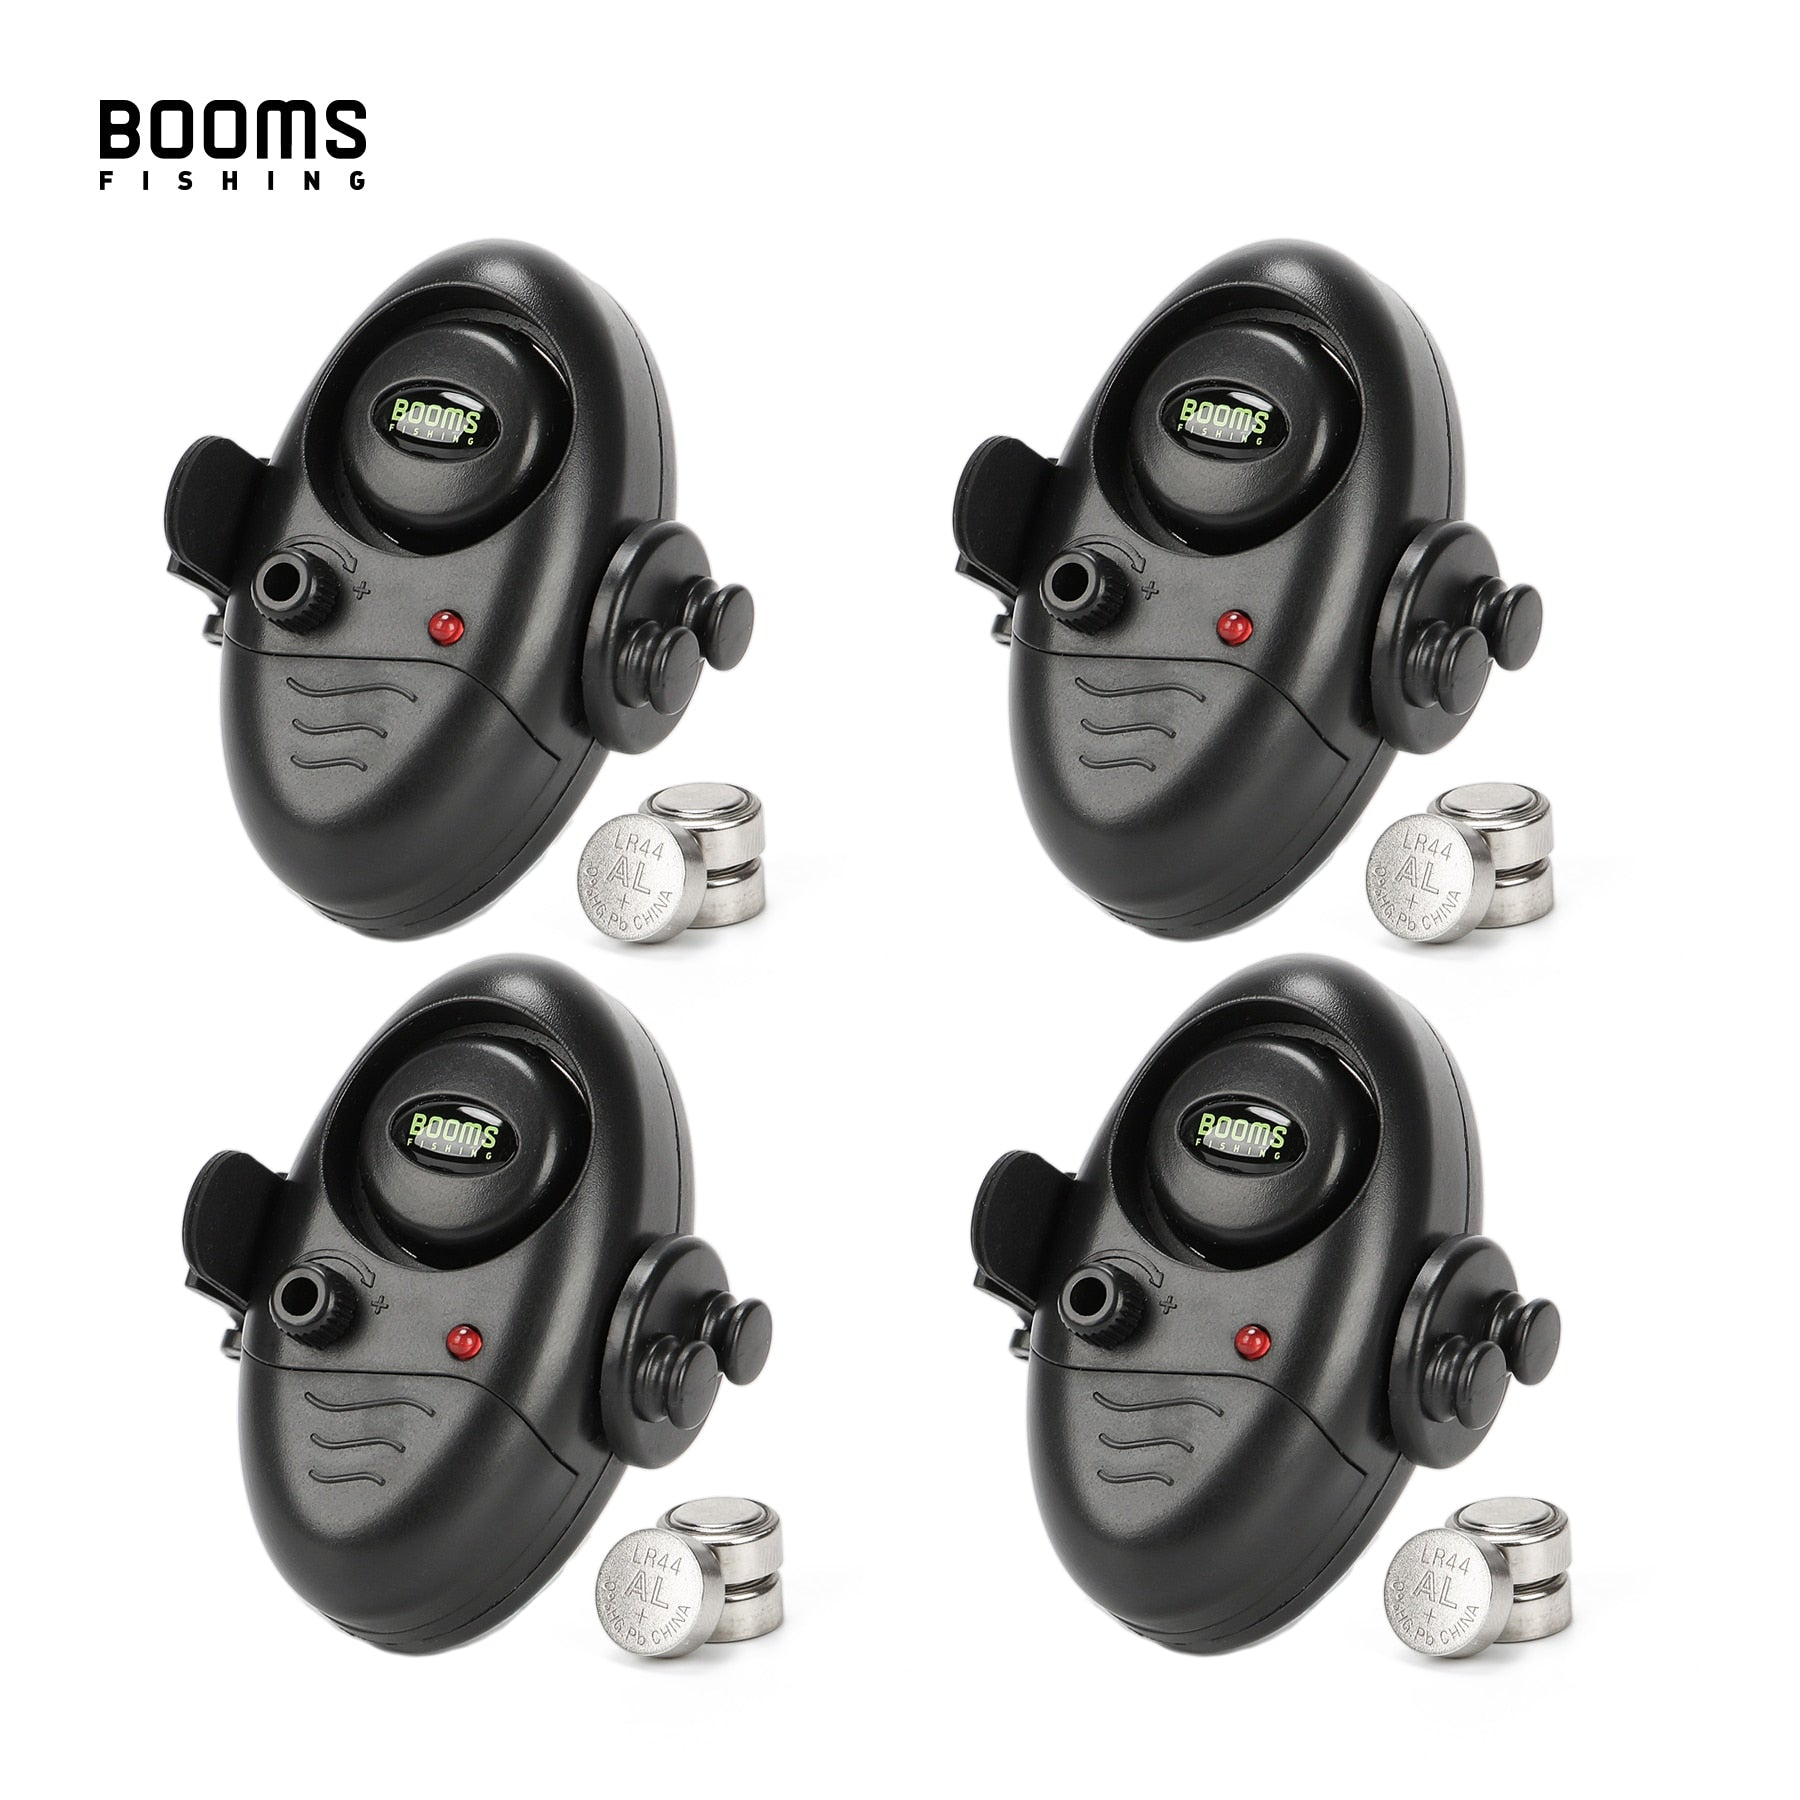 Booms Fishing E02 Bite Alarm Fishing Signalizator Carp Fish Indicator with LED / Sounds Battery Include 4 sets